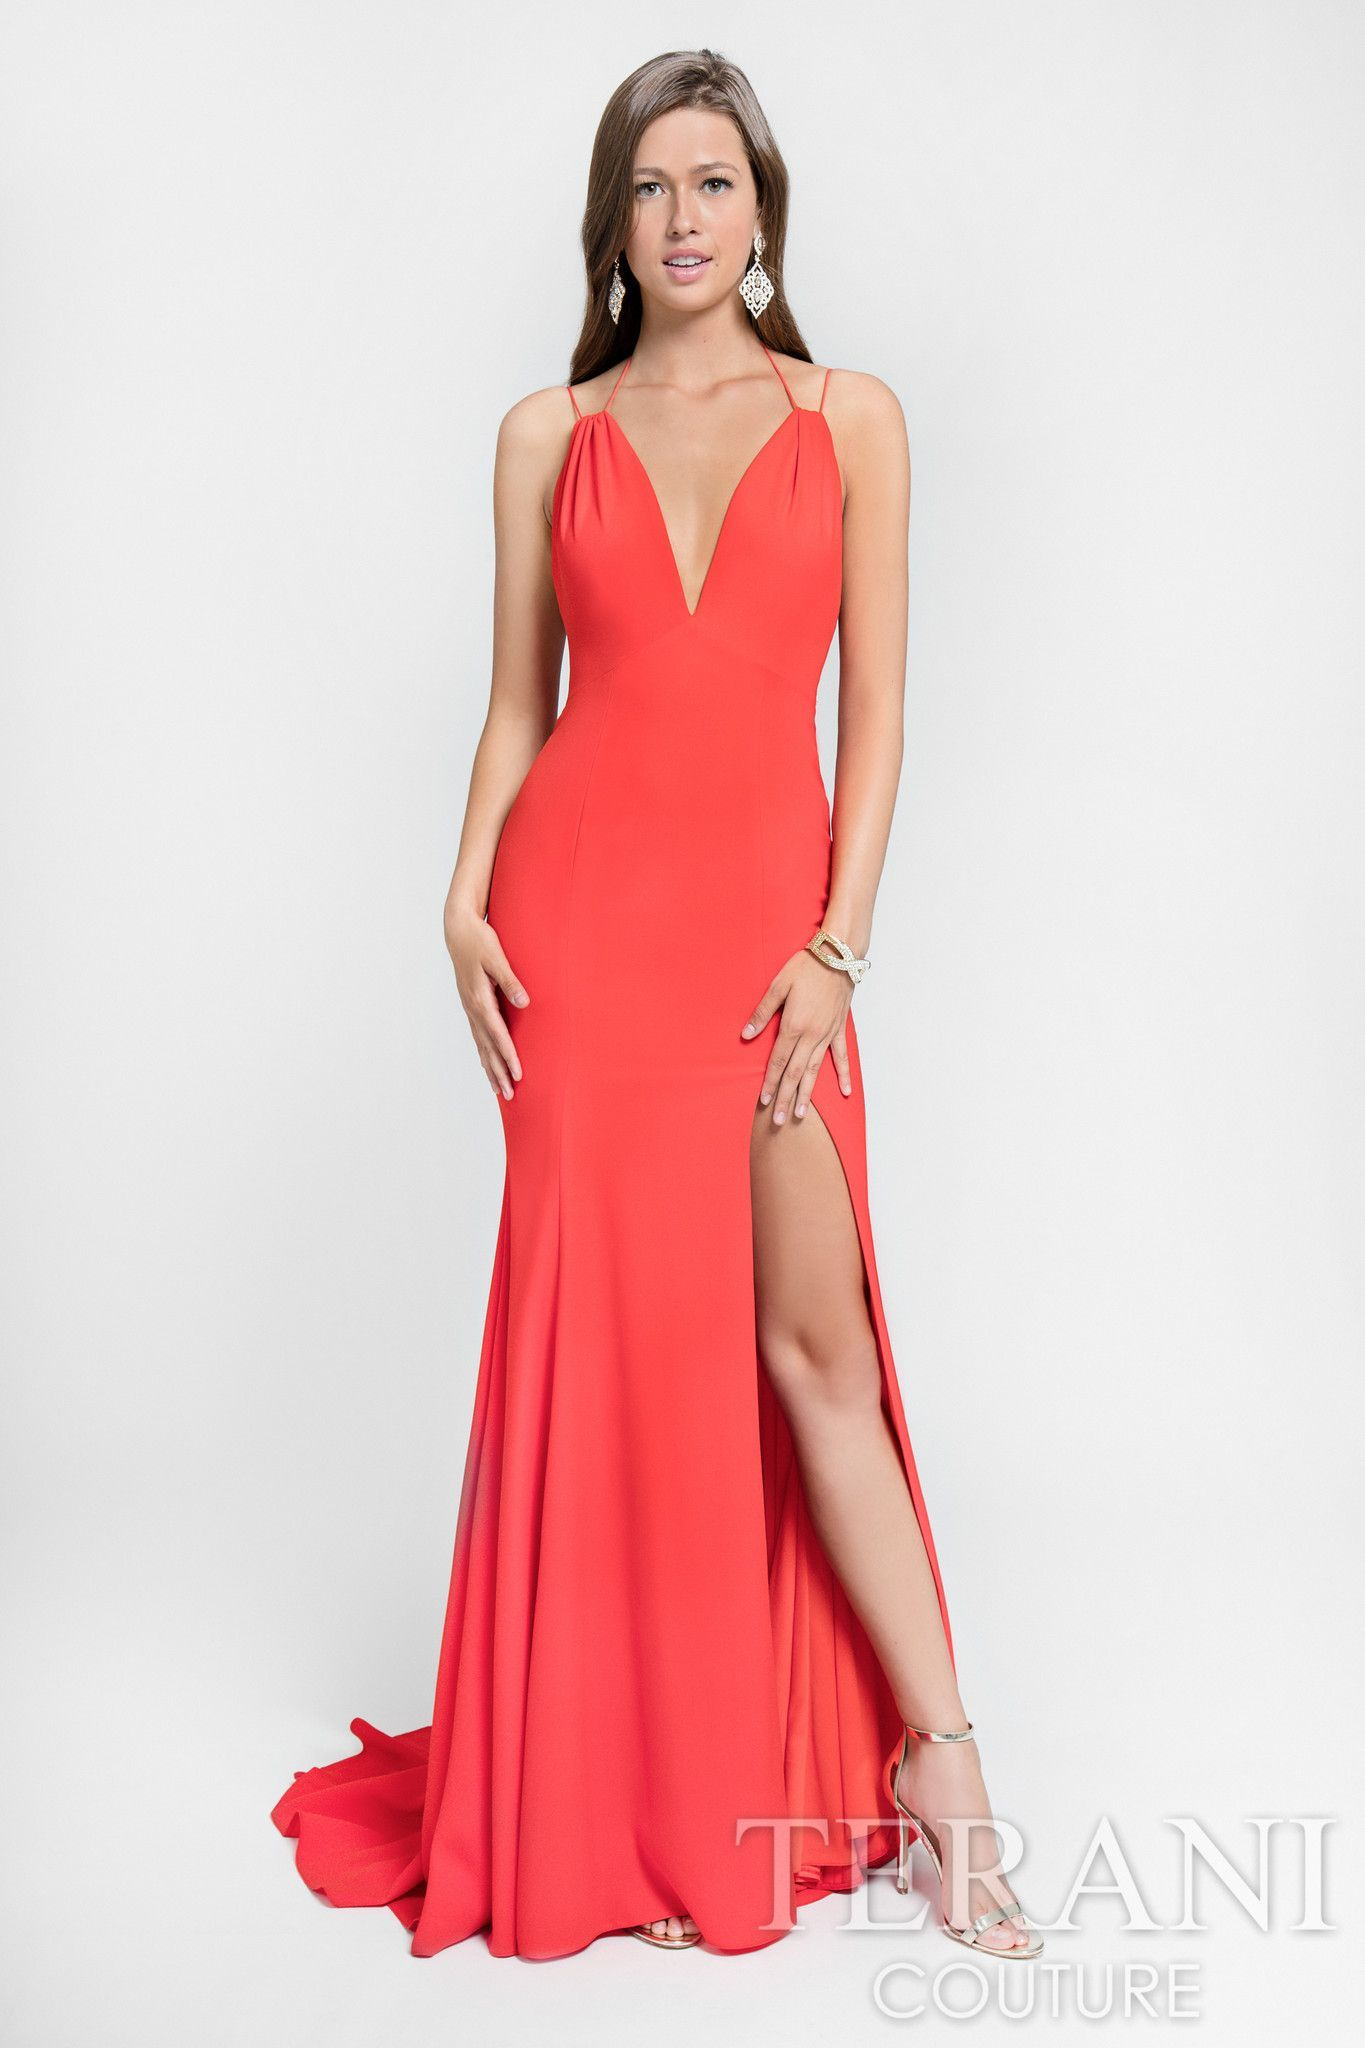 b6bd513029d This simple yet astonishing Terani Gown is perfect to accentuate your  elegance. The high slit on the leg gives a sexy peek but keeps it classy.